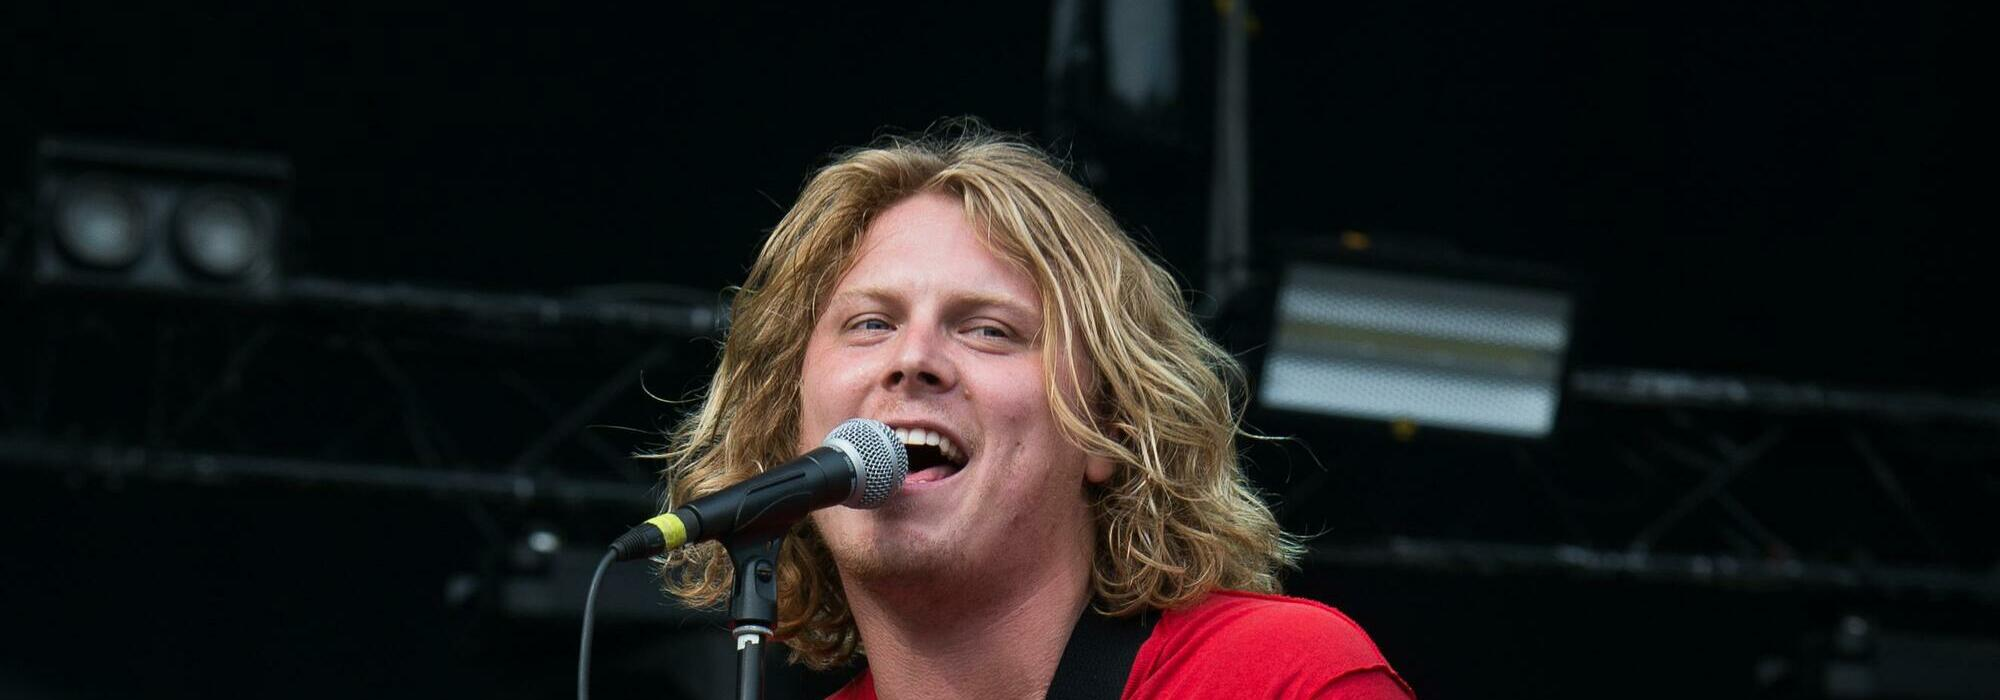 A Ty Segall live event